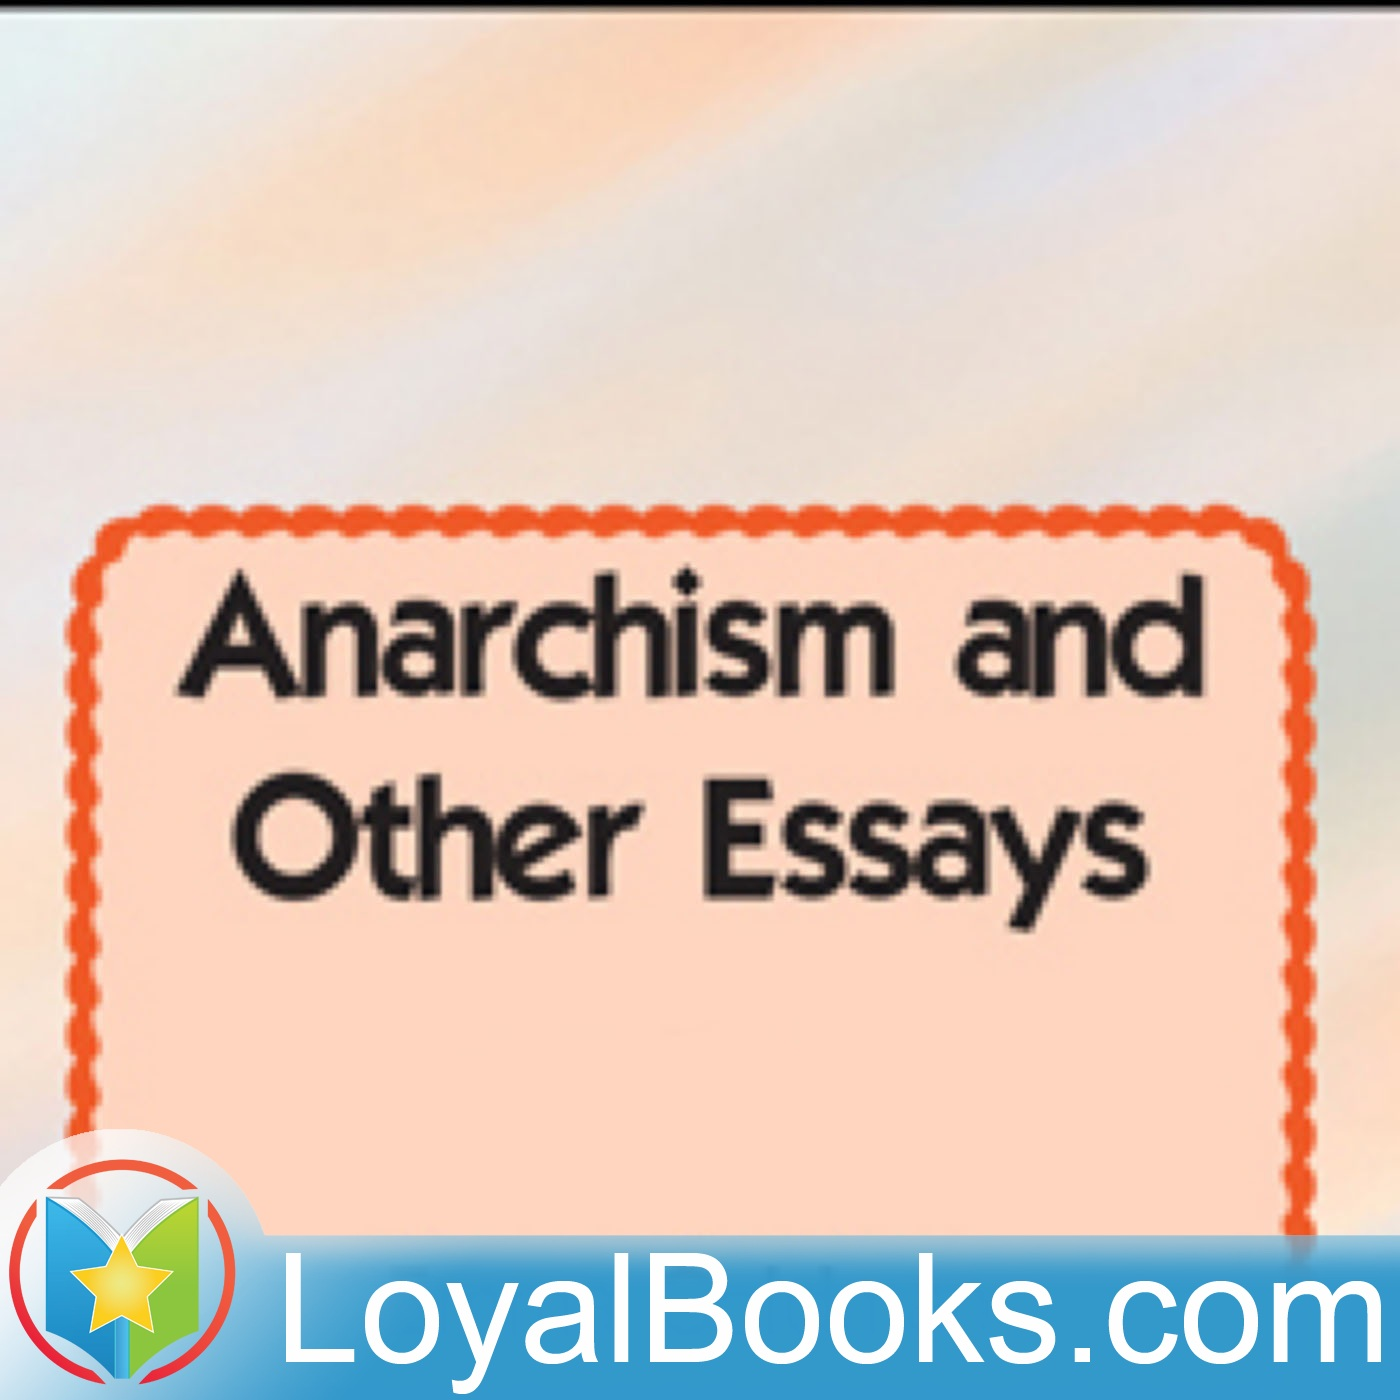 013 Anarchism And Other Essays Essay Example By Emma Incredible Goldman Summary Pdf Full